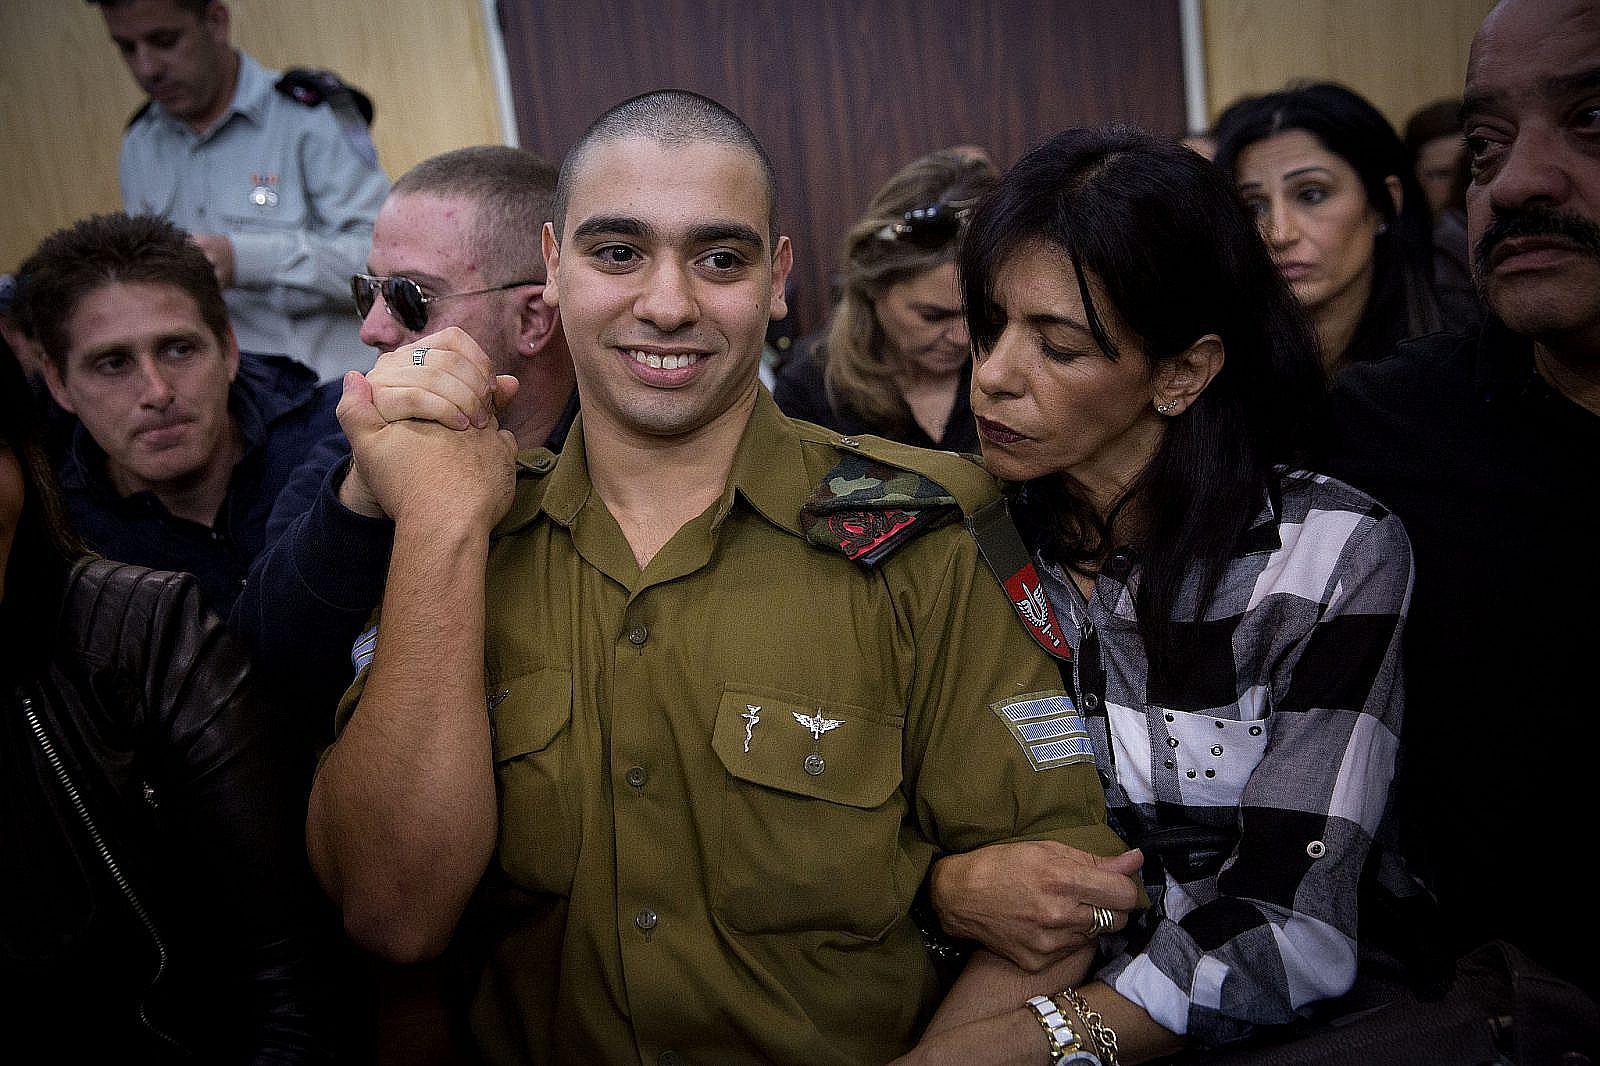 IDF Sgt. Elor Azaria, the Israeli soldier, who shot dead a disarmed and injured Palestinian attacker in Hebron a few months ago, with family and friends in a courtroom at the Kirya military base in Tel Aviv, on January 4, 2017. (Miriam Alster/Flash90)